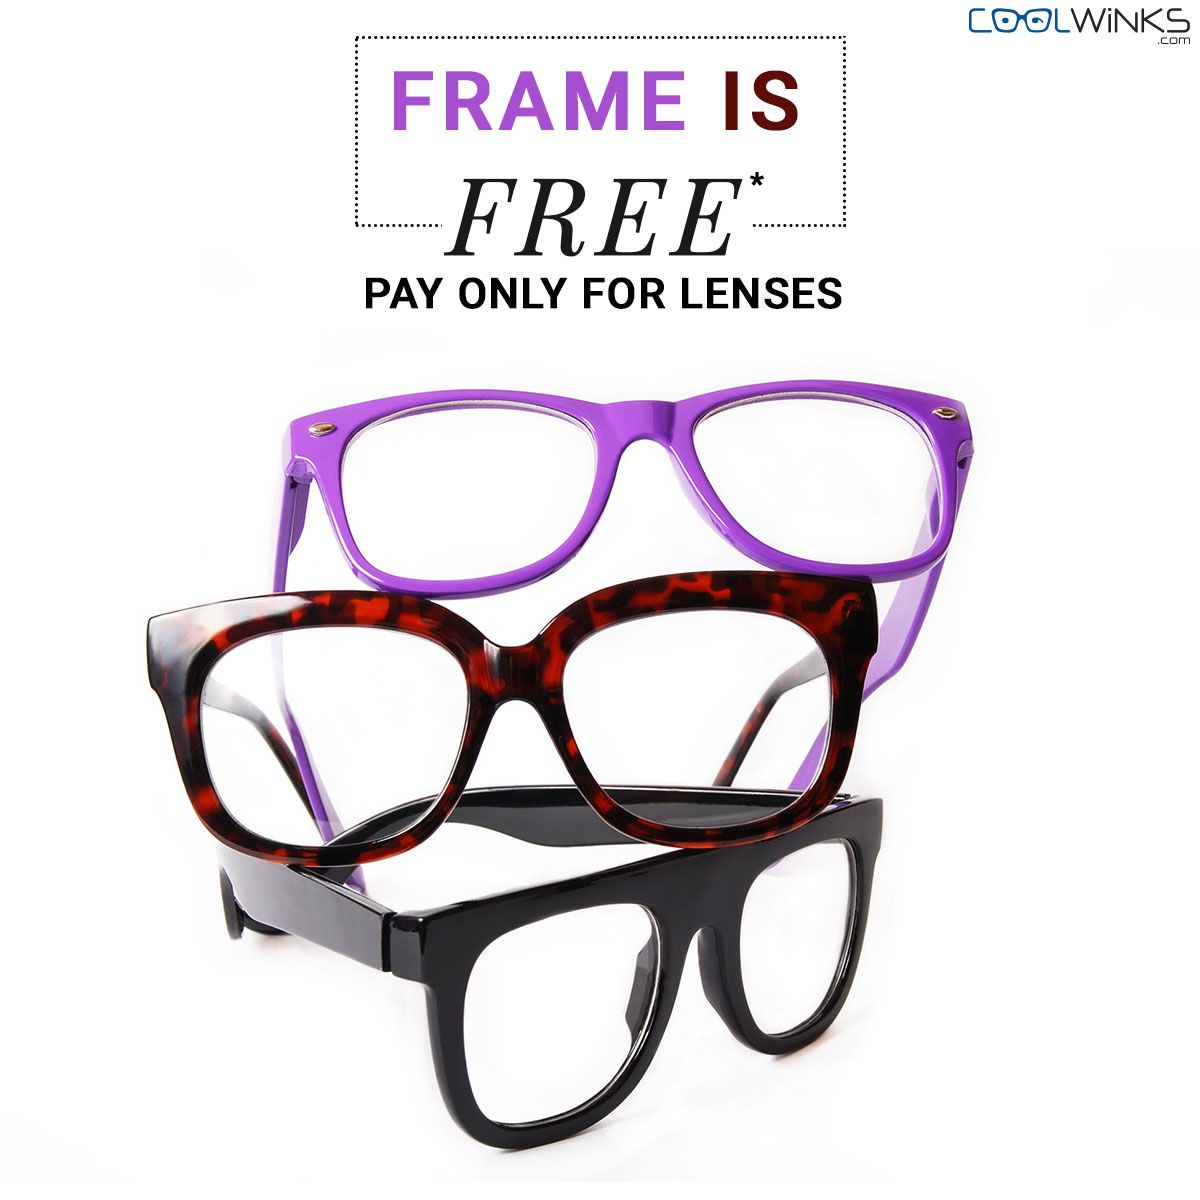 a046de2f04 SPECIAL SALE to start off your Weekend! Visit Coolwinks   Get Every Eyeglass  Frame for Free. Just pay for lenses. Limited Period Offer. Shop Now.